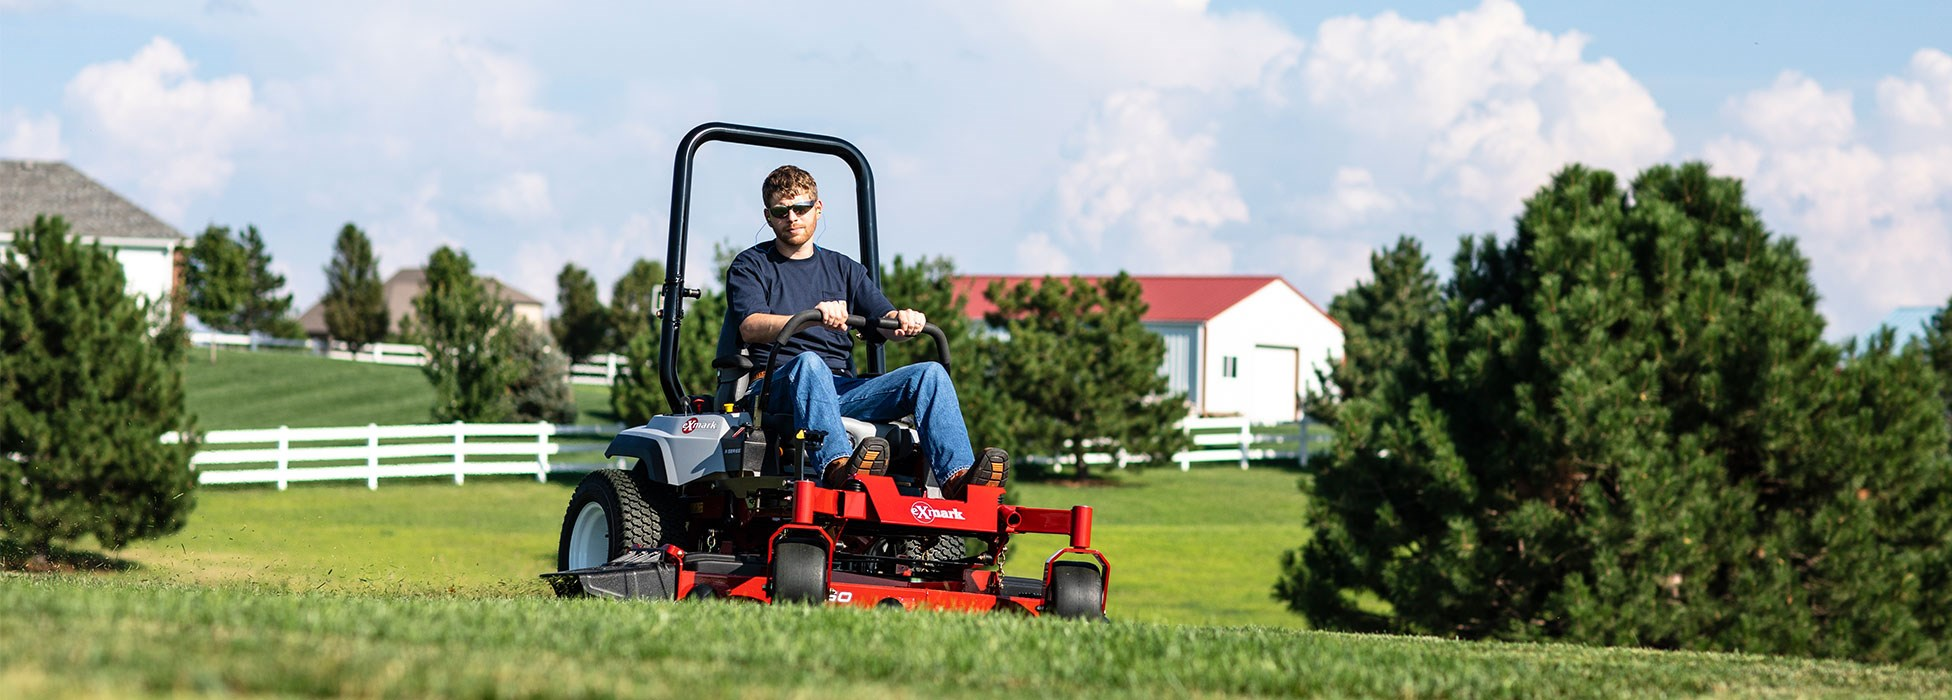 Zero-Turn Mowers and Commercial Mowers | Exmark